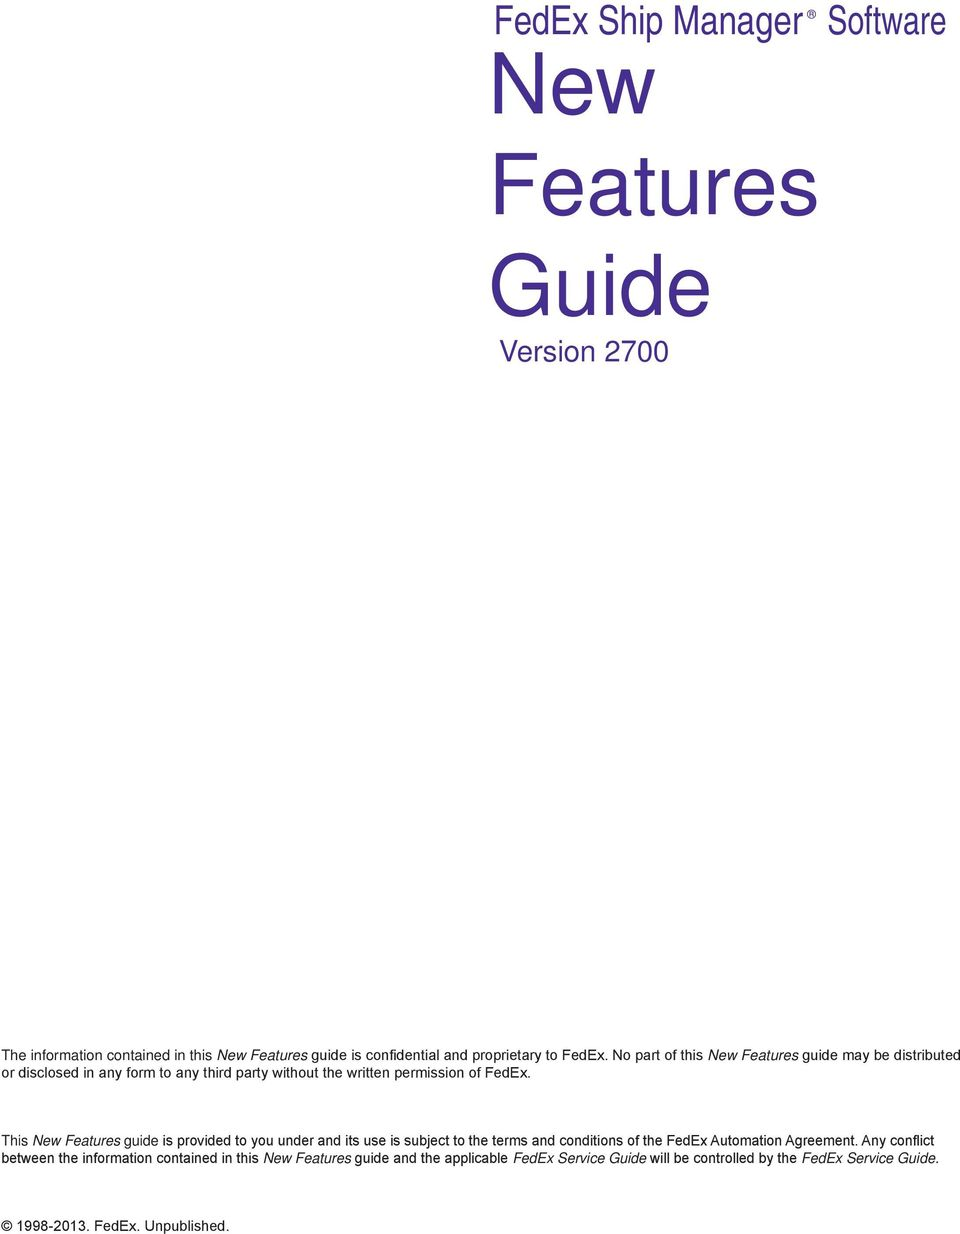 This New Features guide is provided to you under and its use is subject to the terms and conditions of the FedEx Automation Agreement.